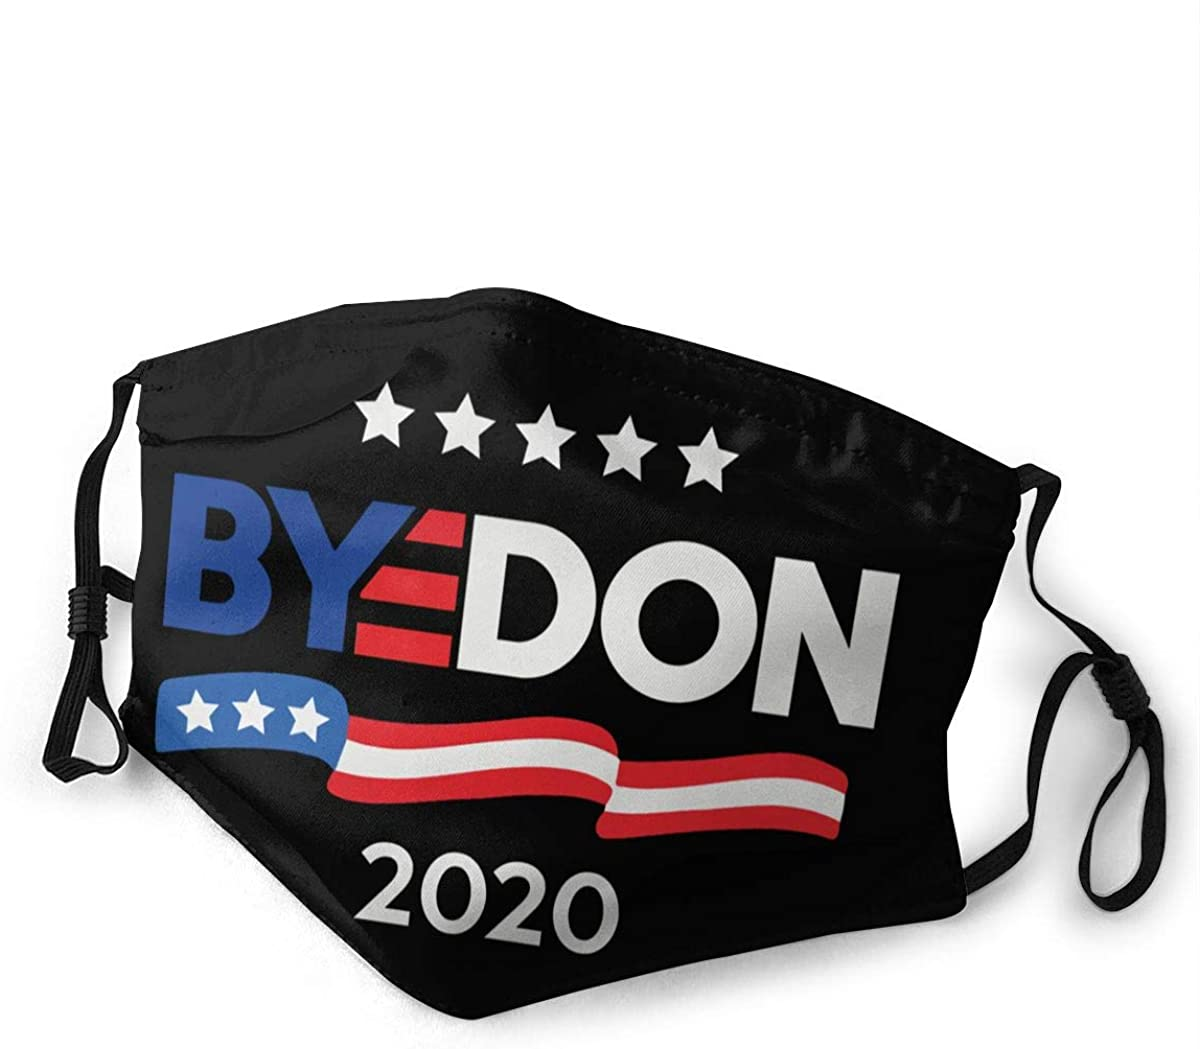 Byedon 2020 Face Mask With Adjustable For Men And Women